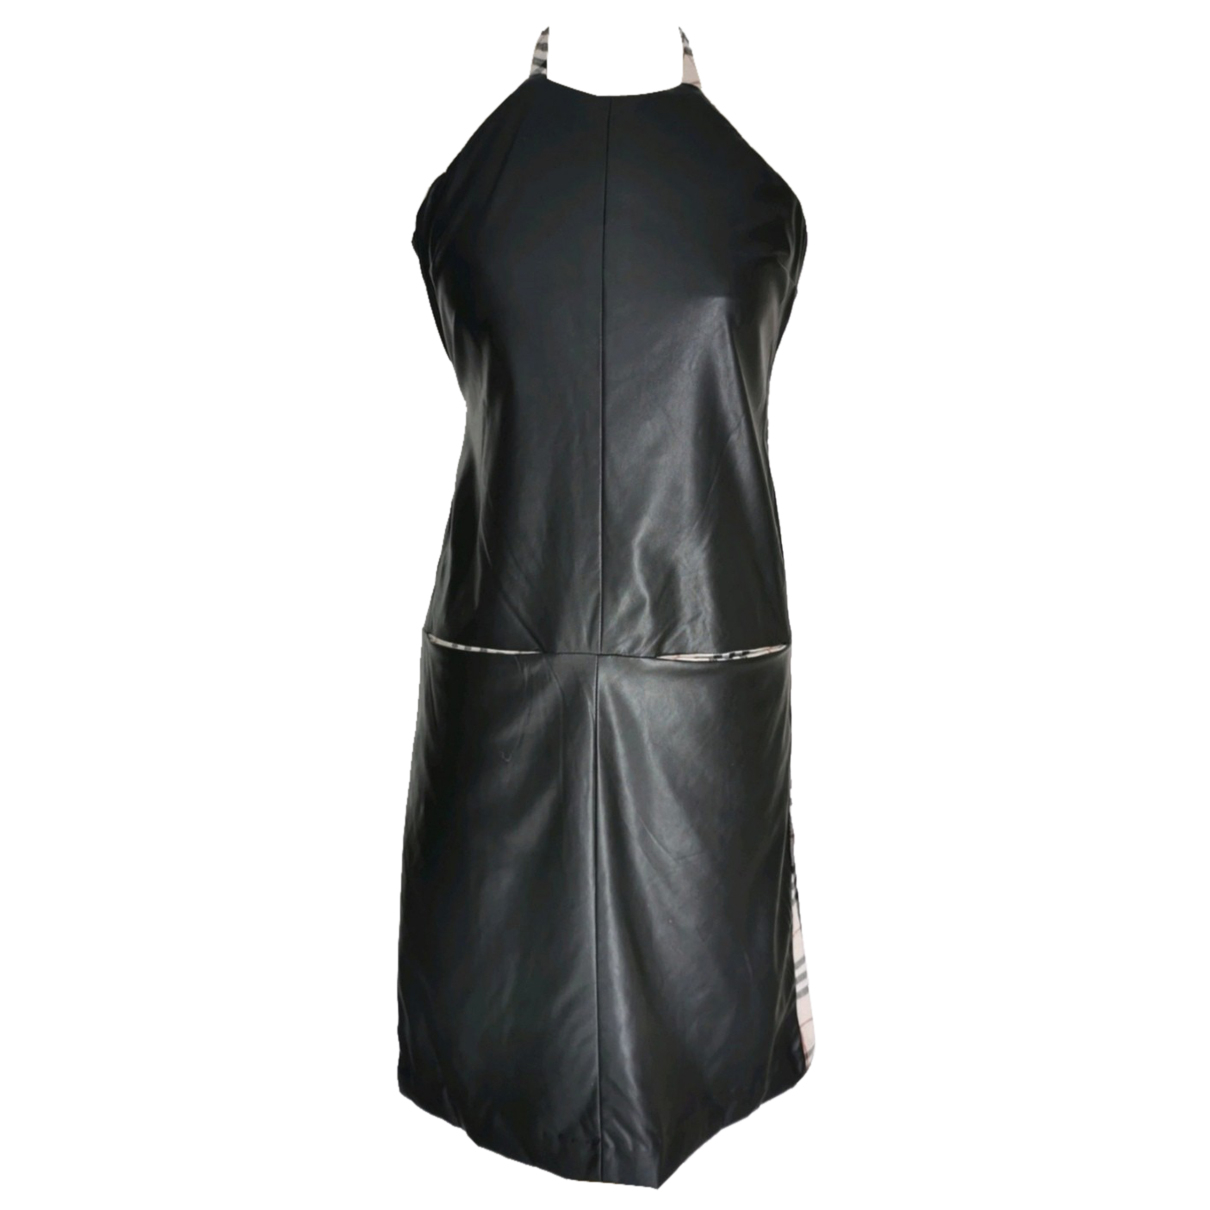 Burberry N Black Linen dress for Women 36 FR